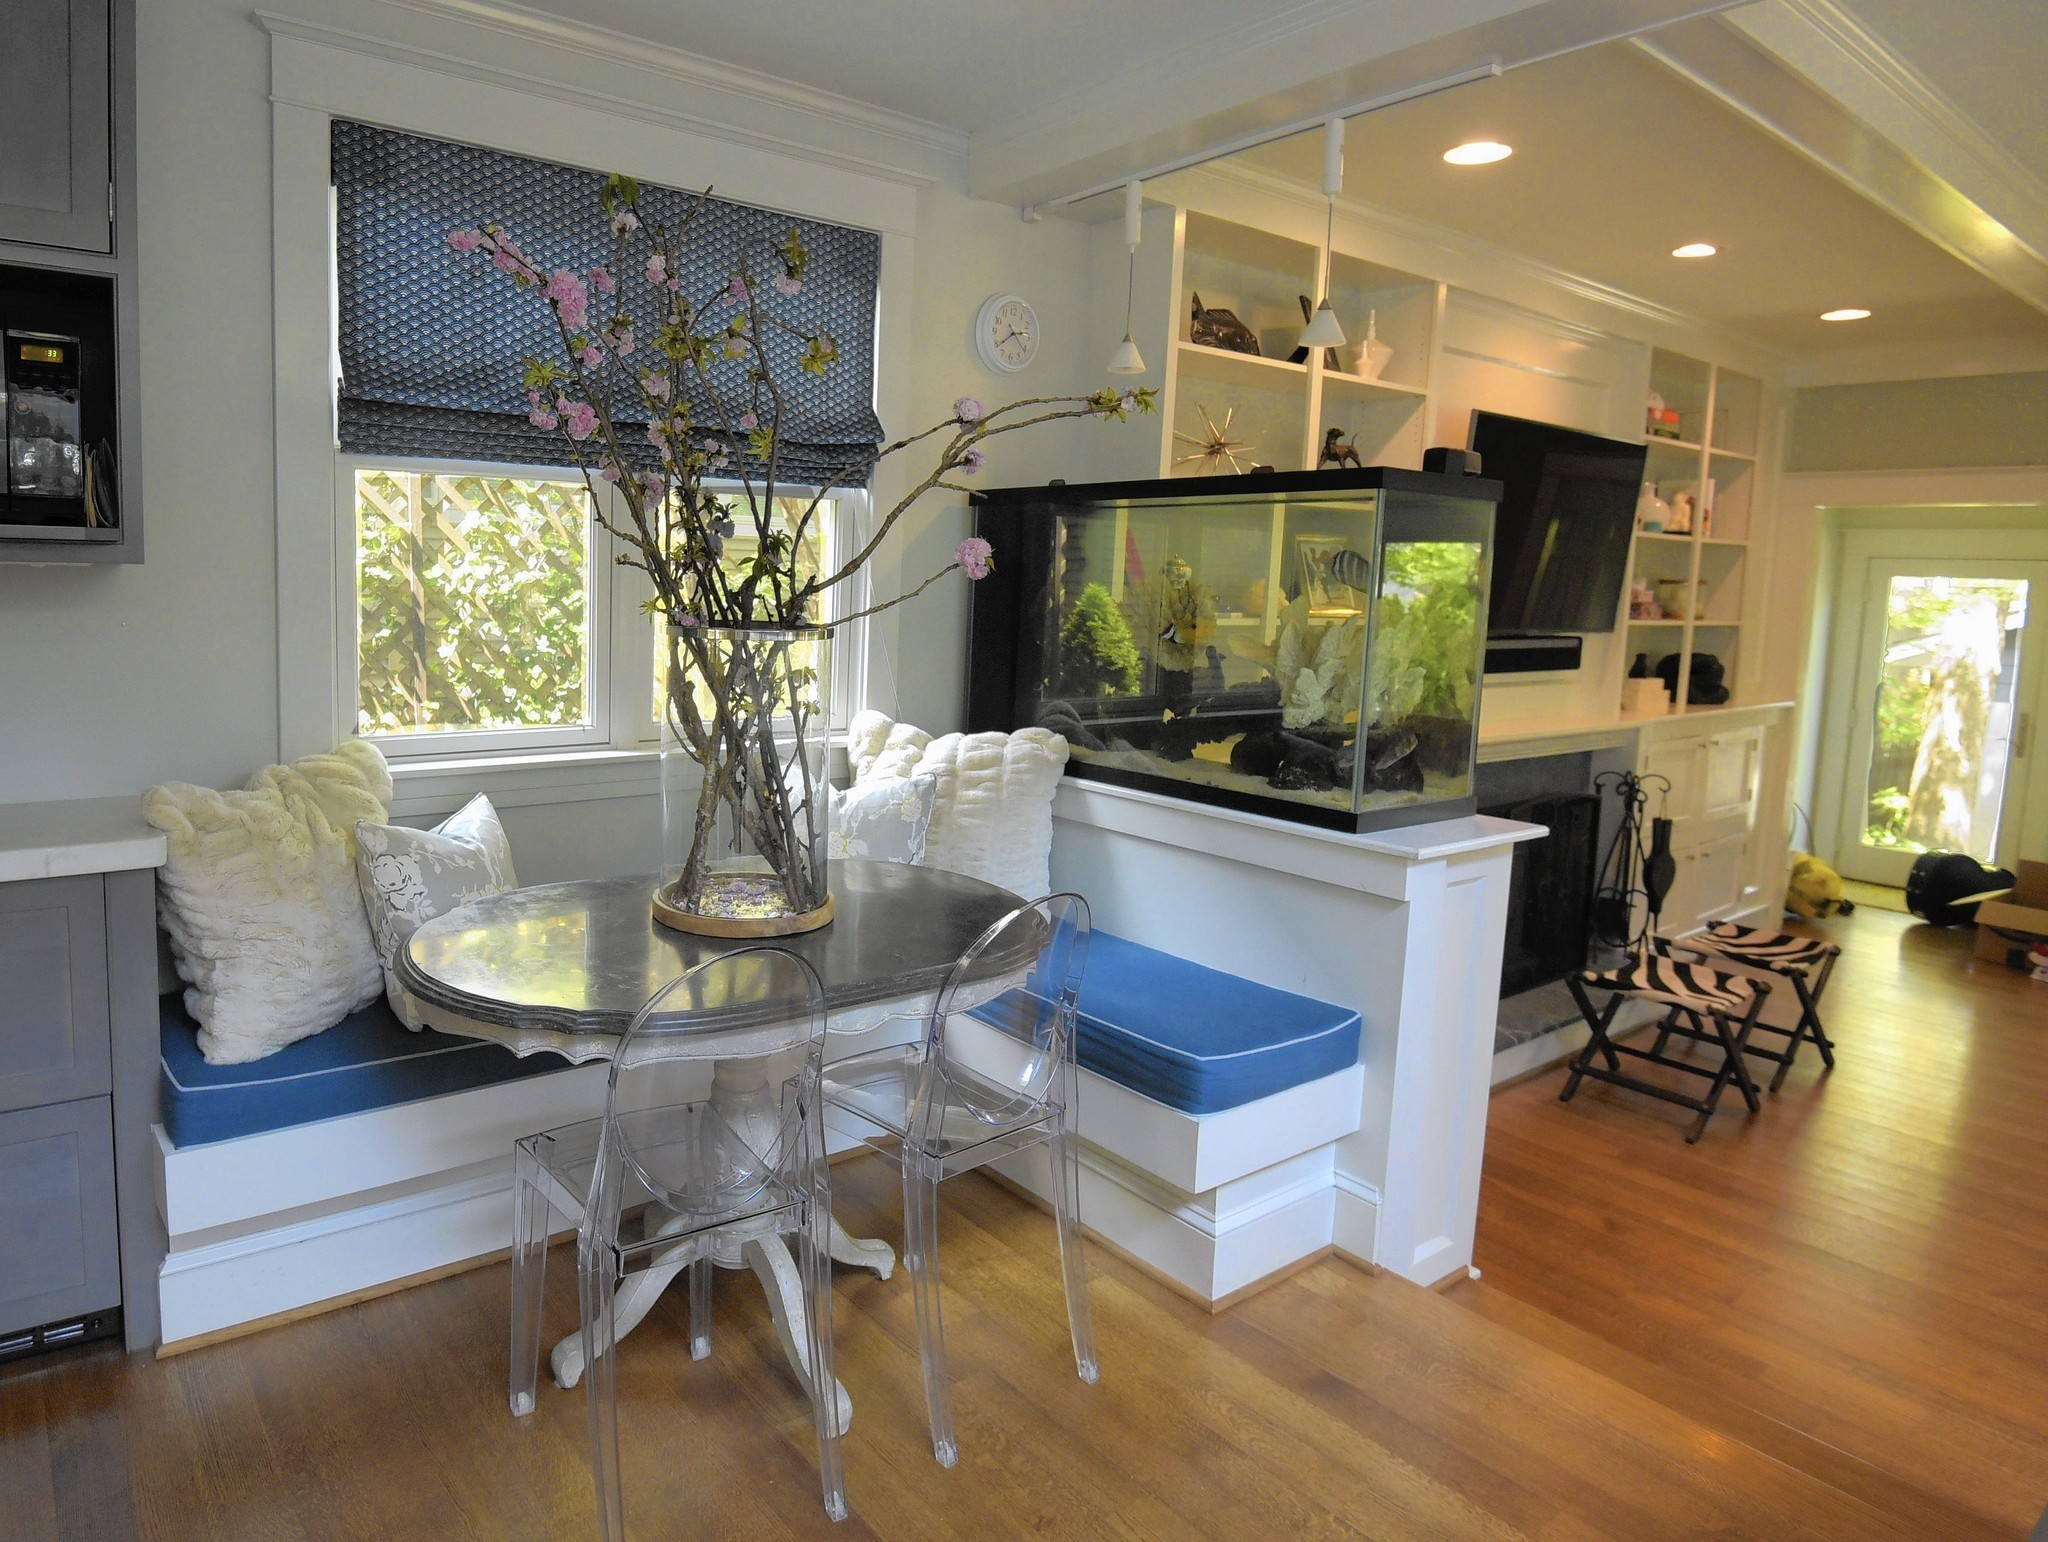 Subtle Beach Home Decor Goes Beyond Seashells And Sailboats   Baltimore Sun